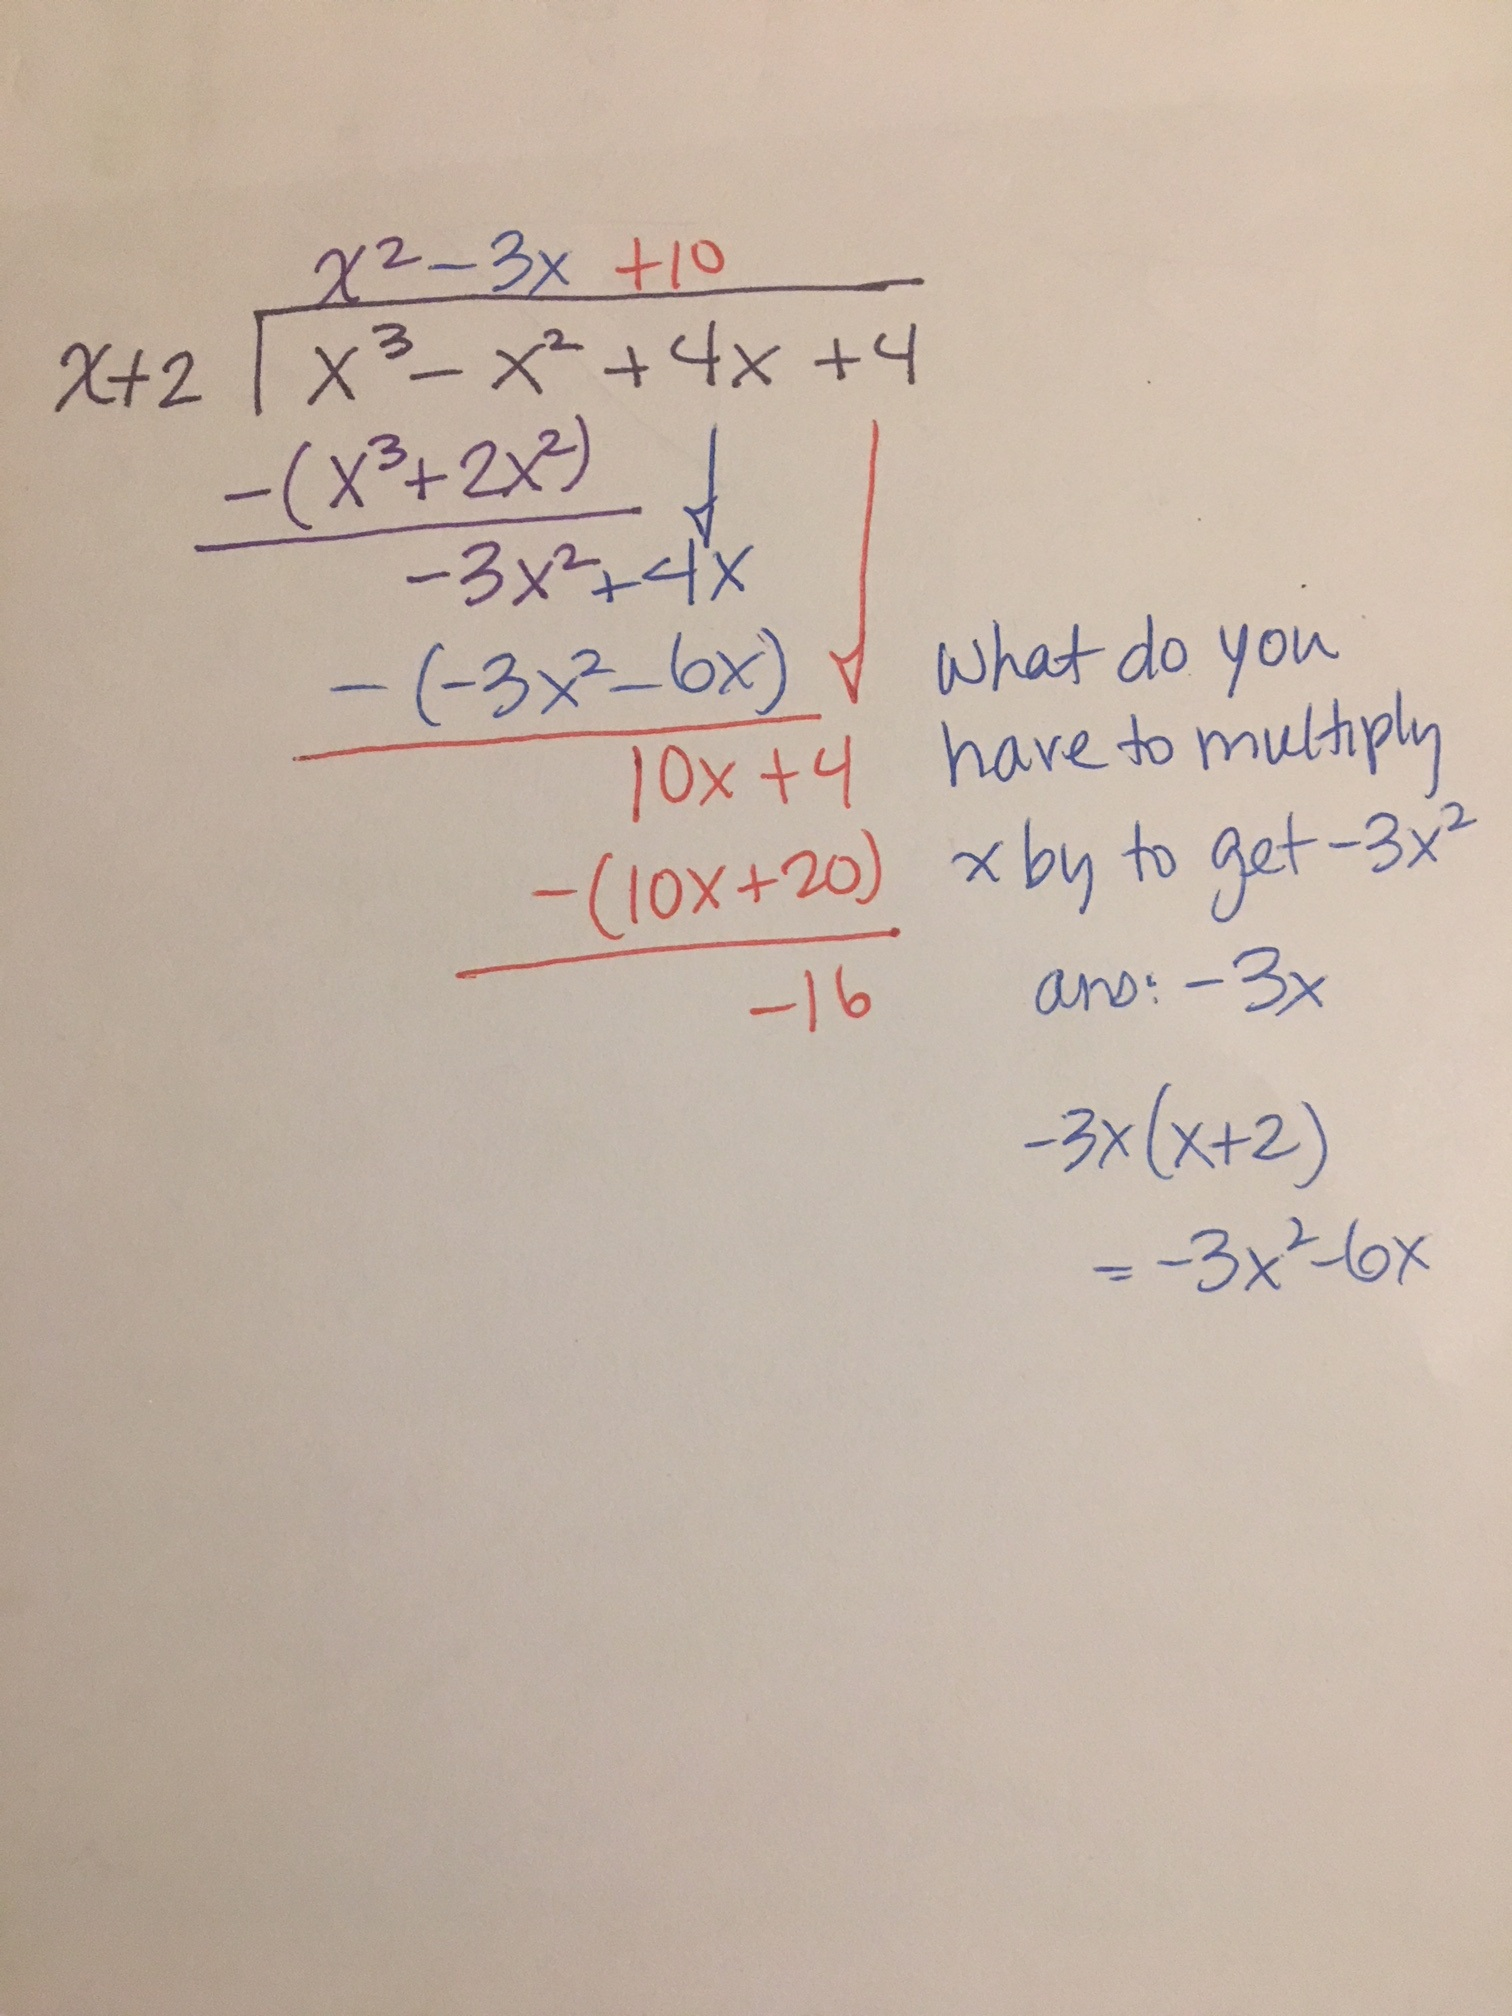 how do you divide x 3 x 2 4x 4 x 2 using polynomial long division socratic how do you divide x 3 x 2 4x 4 x 2